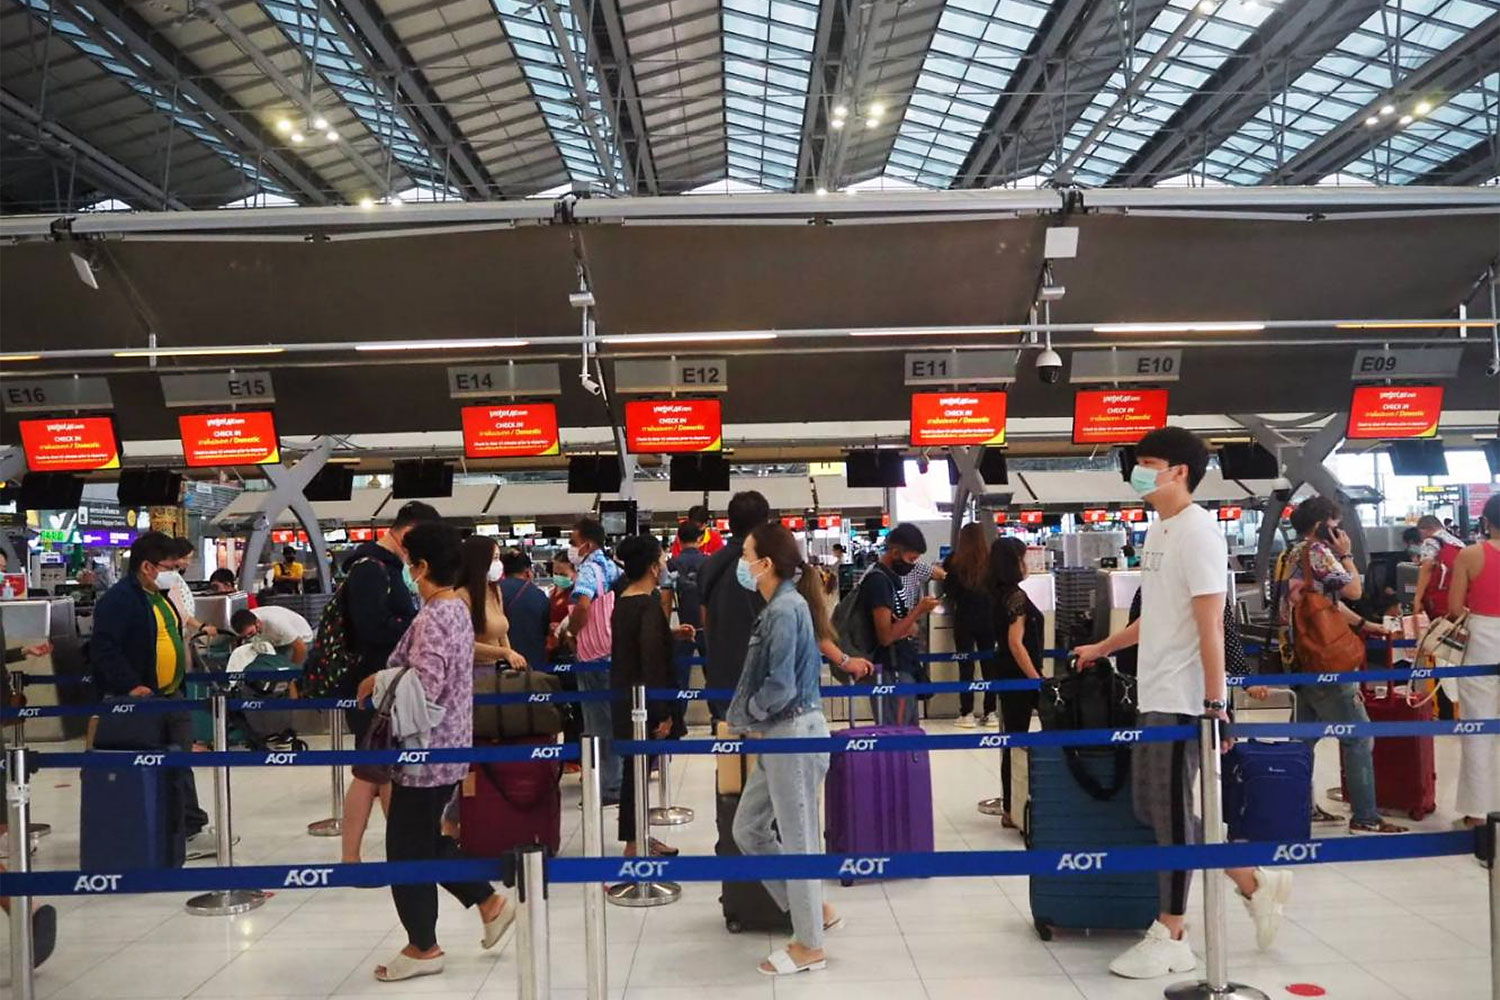 Domestic passengers wait at Thai Vietjet Air's check-in counter at Suvarnabhumi airport in September, after the lockdown was lifted. (Photo by Dusida Worrachaddejchai)